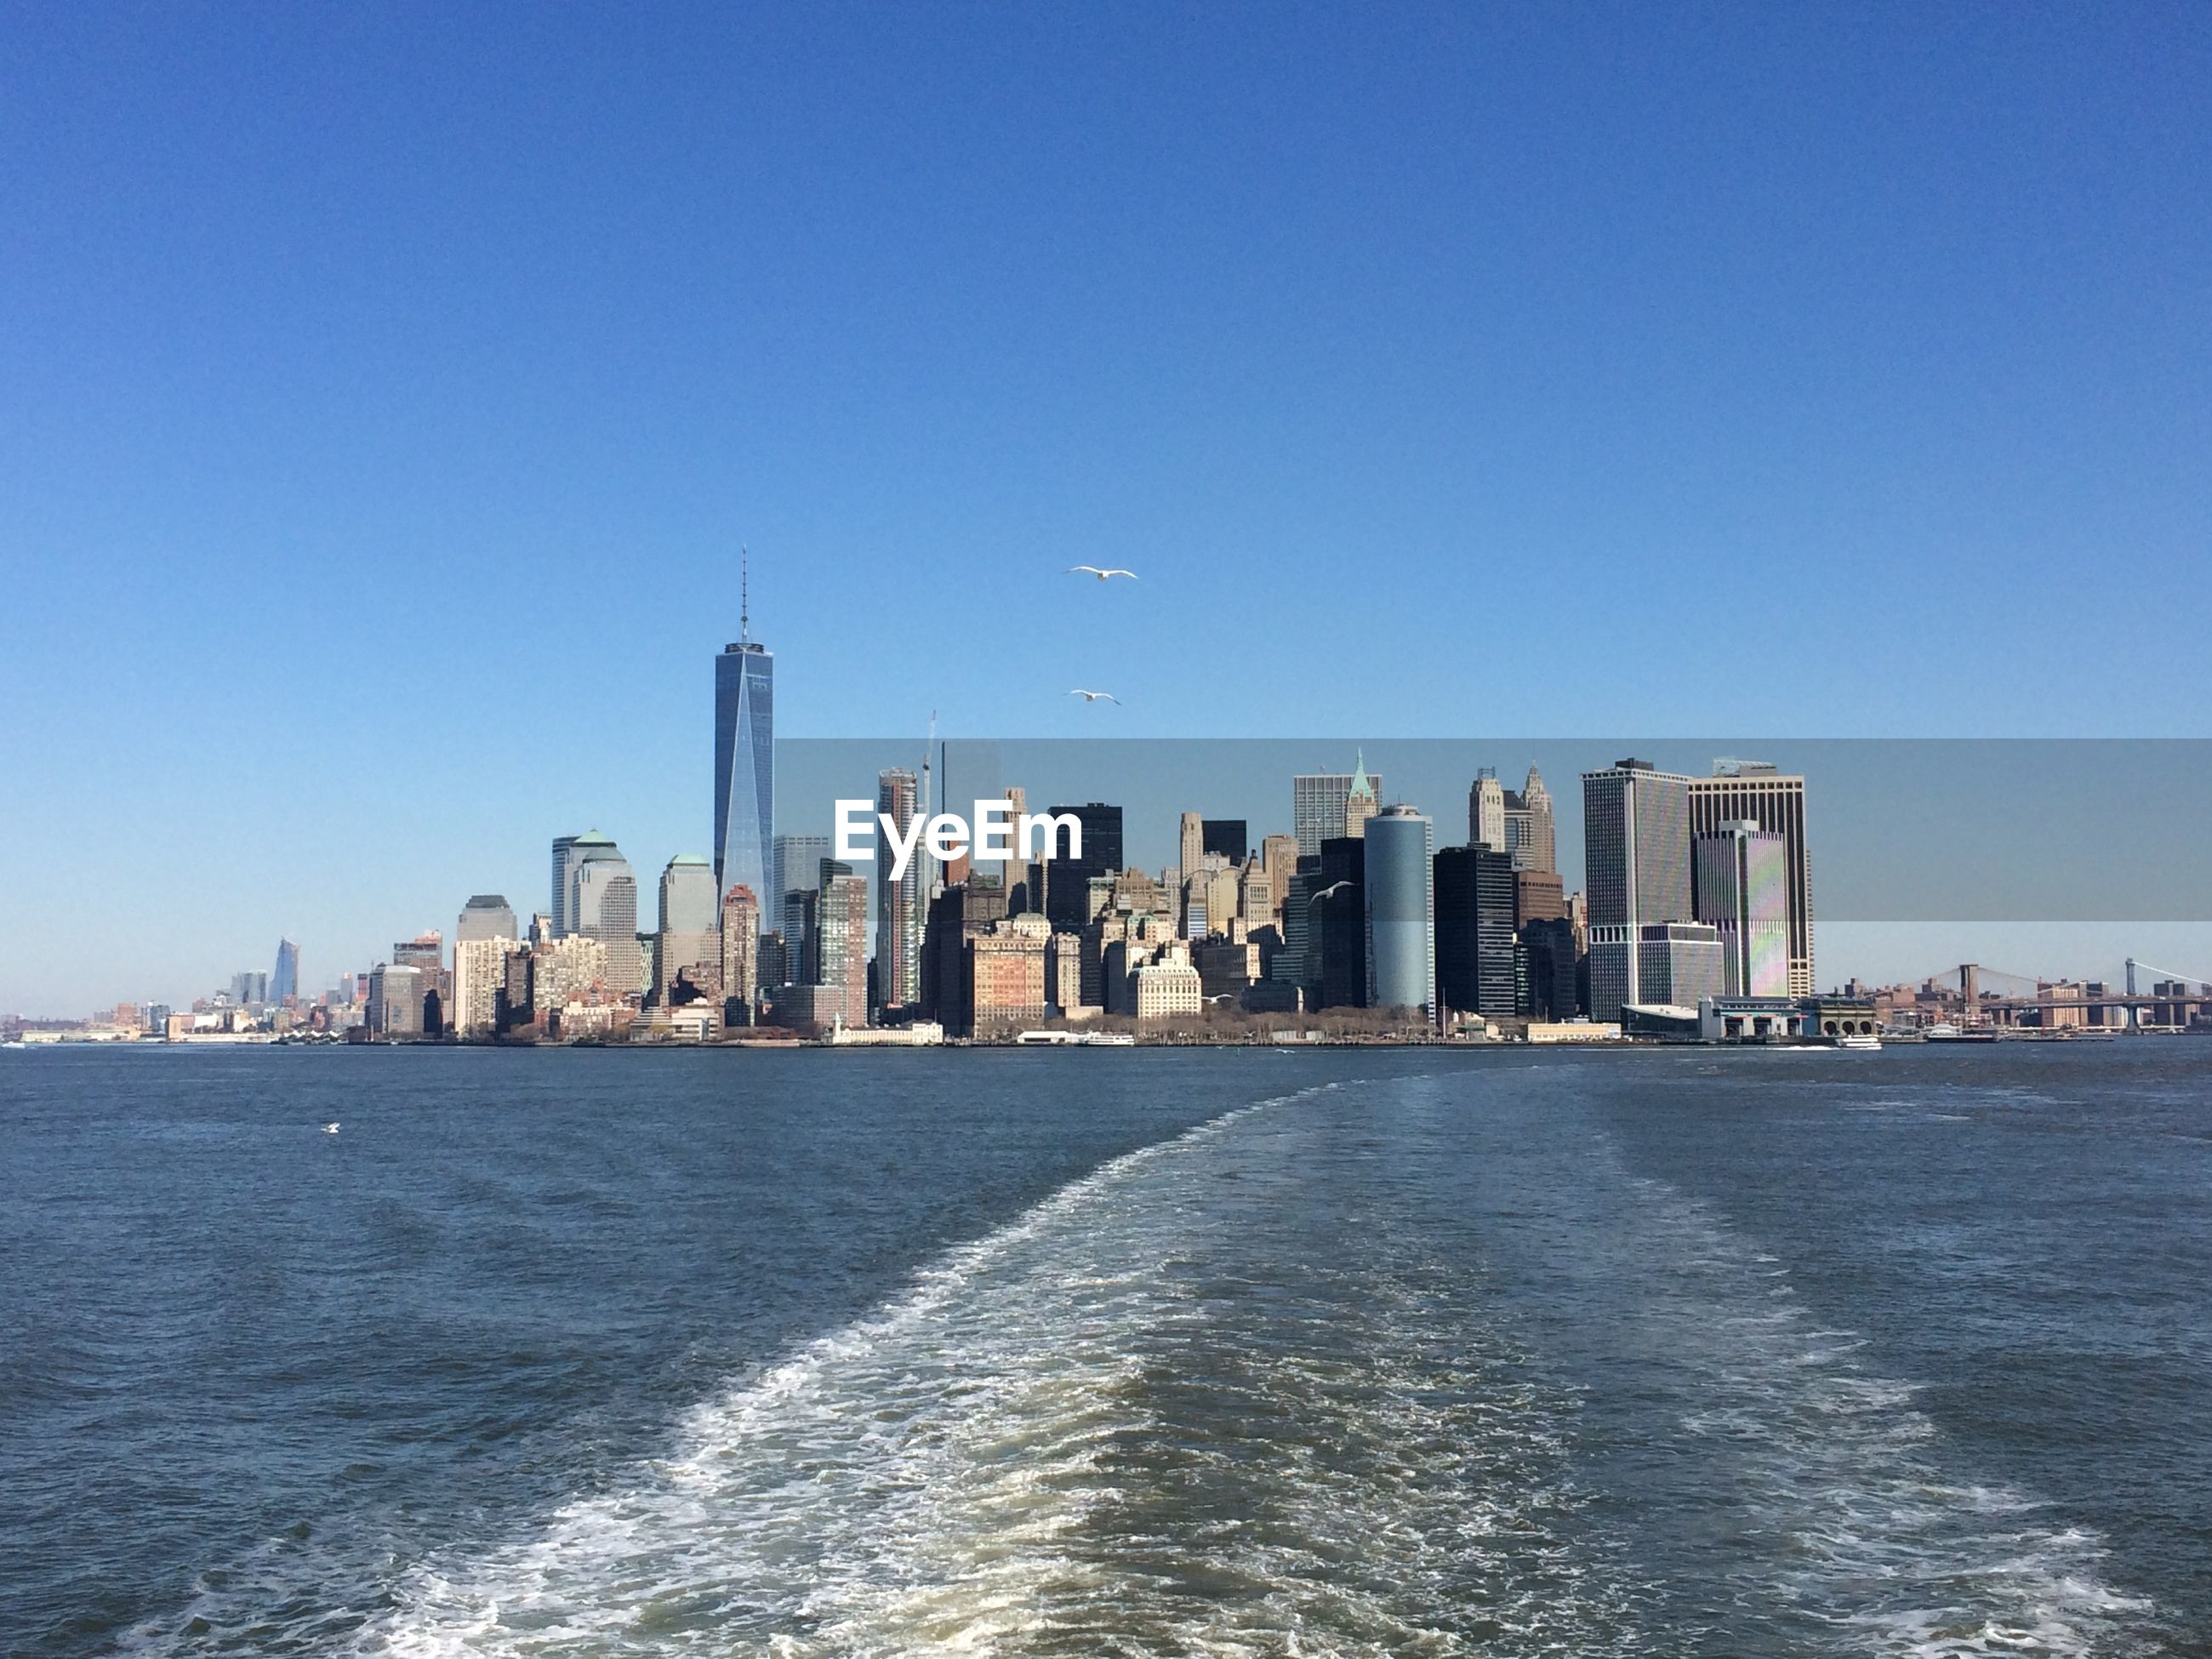 One world trade center by east river against clear blue sky at manhattan